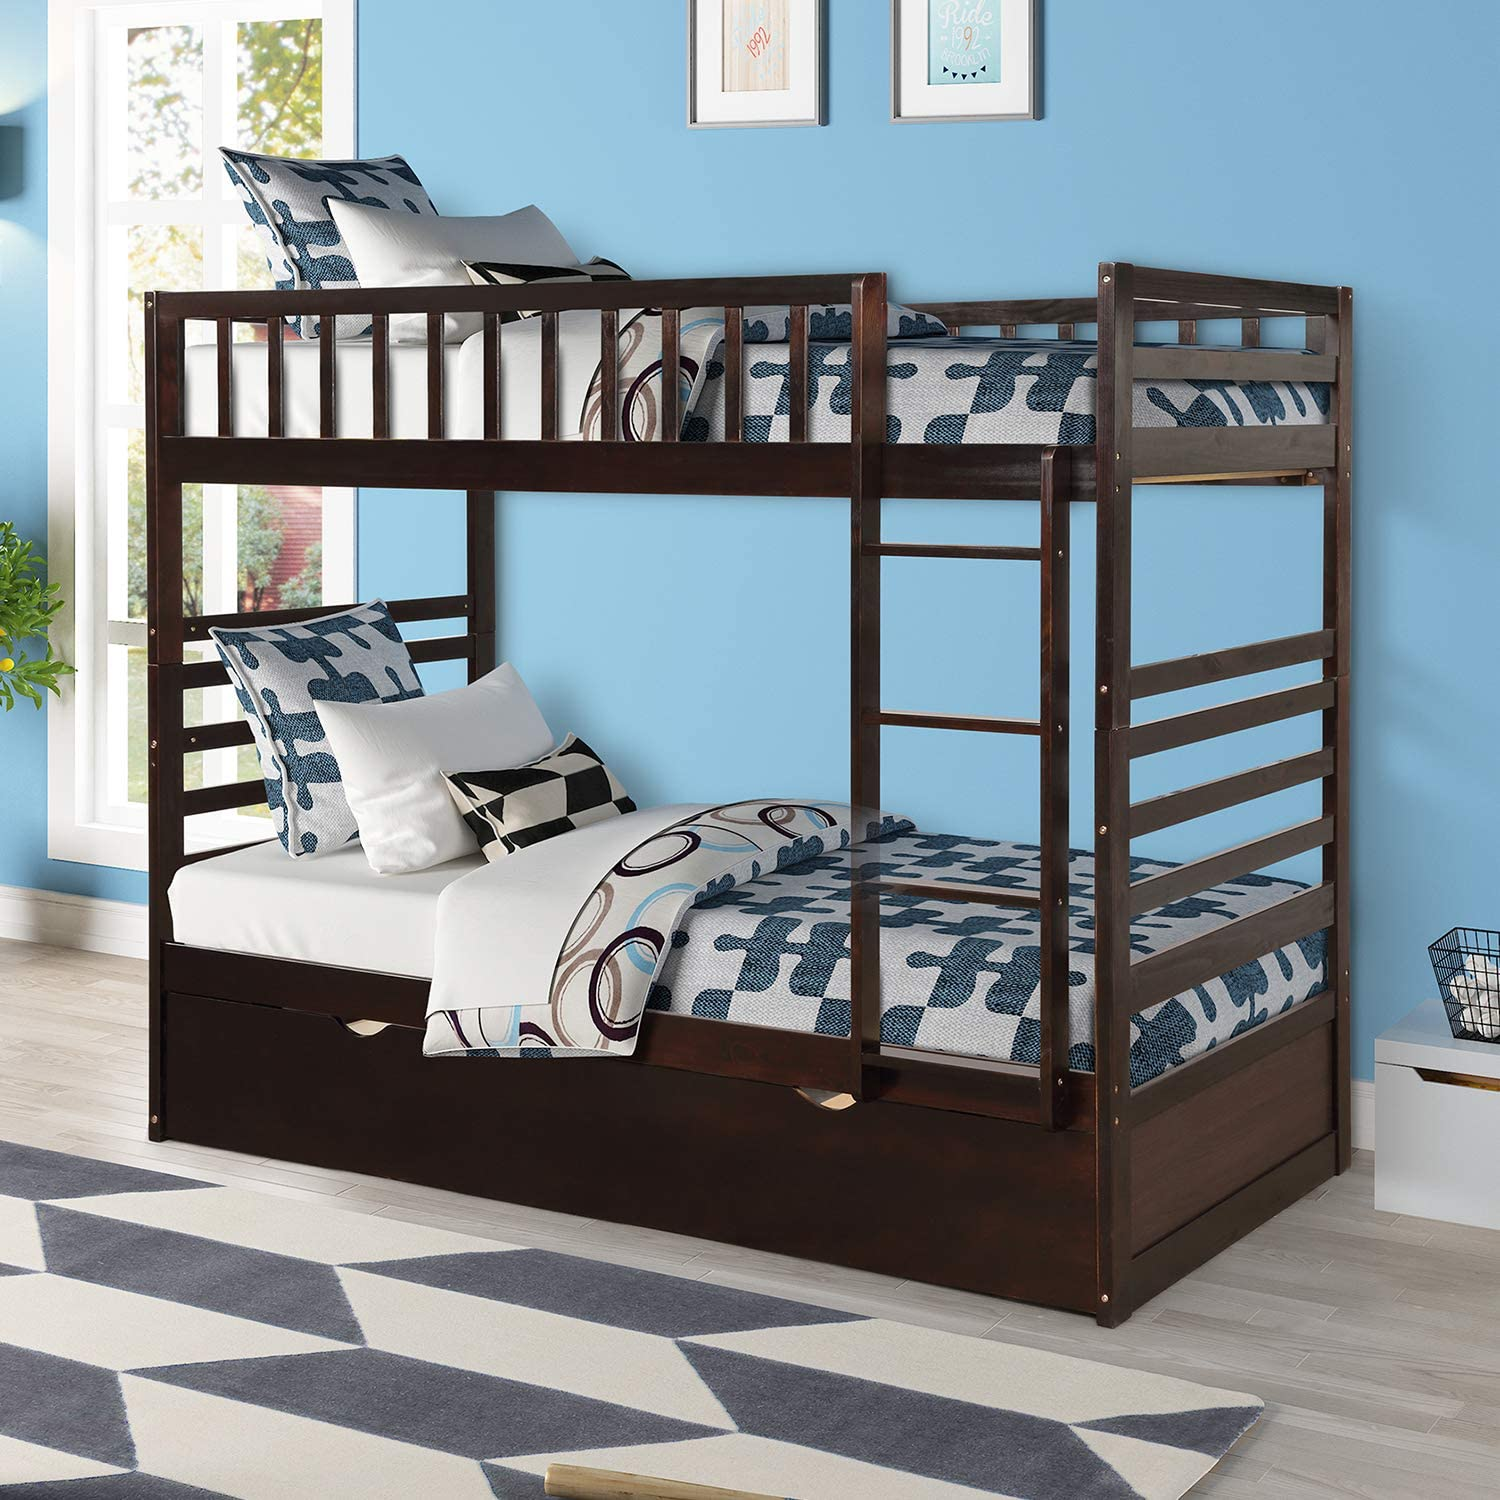 Twin Over Twin Bunk Bed, Hinipa Space Saving Design Bedroom Furniture Solid Wood Bunk Beds with Trundle, Ladder and Safety Rail for Boys, Girls, Kids, Teens and Adults Espresso